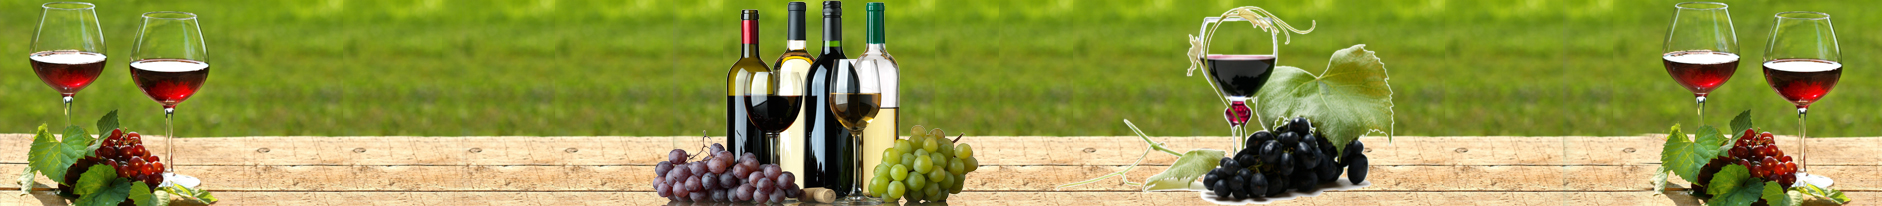 Wine Tour With Goa Beaches 11 Nights Amp 12 Days Package